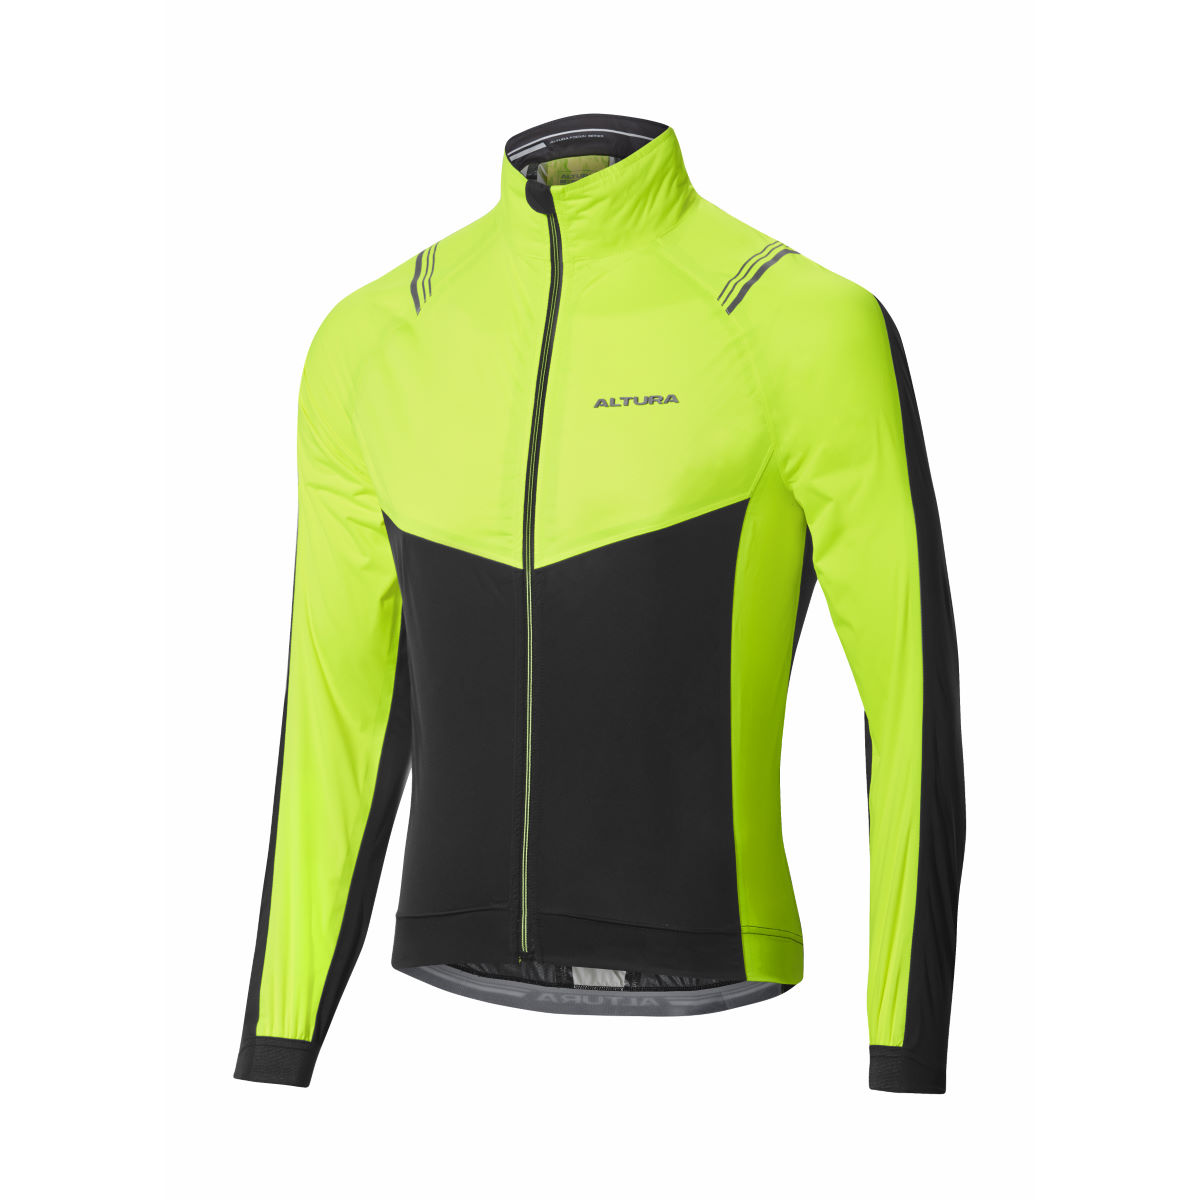 Veste Altura Podium Elite (imperméable) - XXL Hi-Viz Yellow/Black